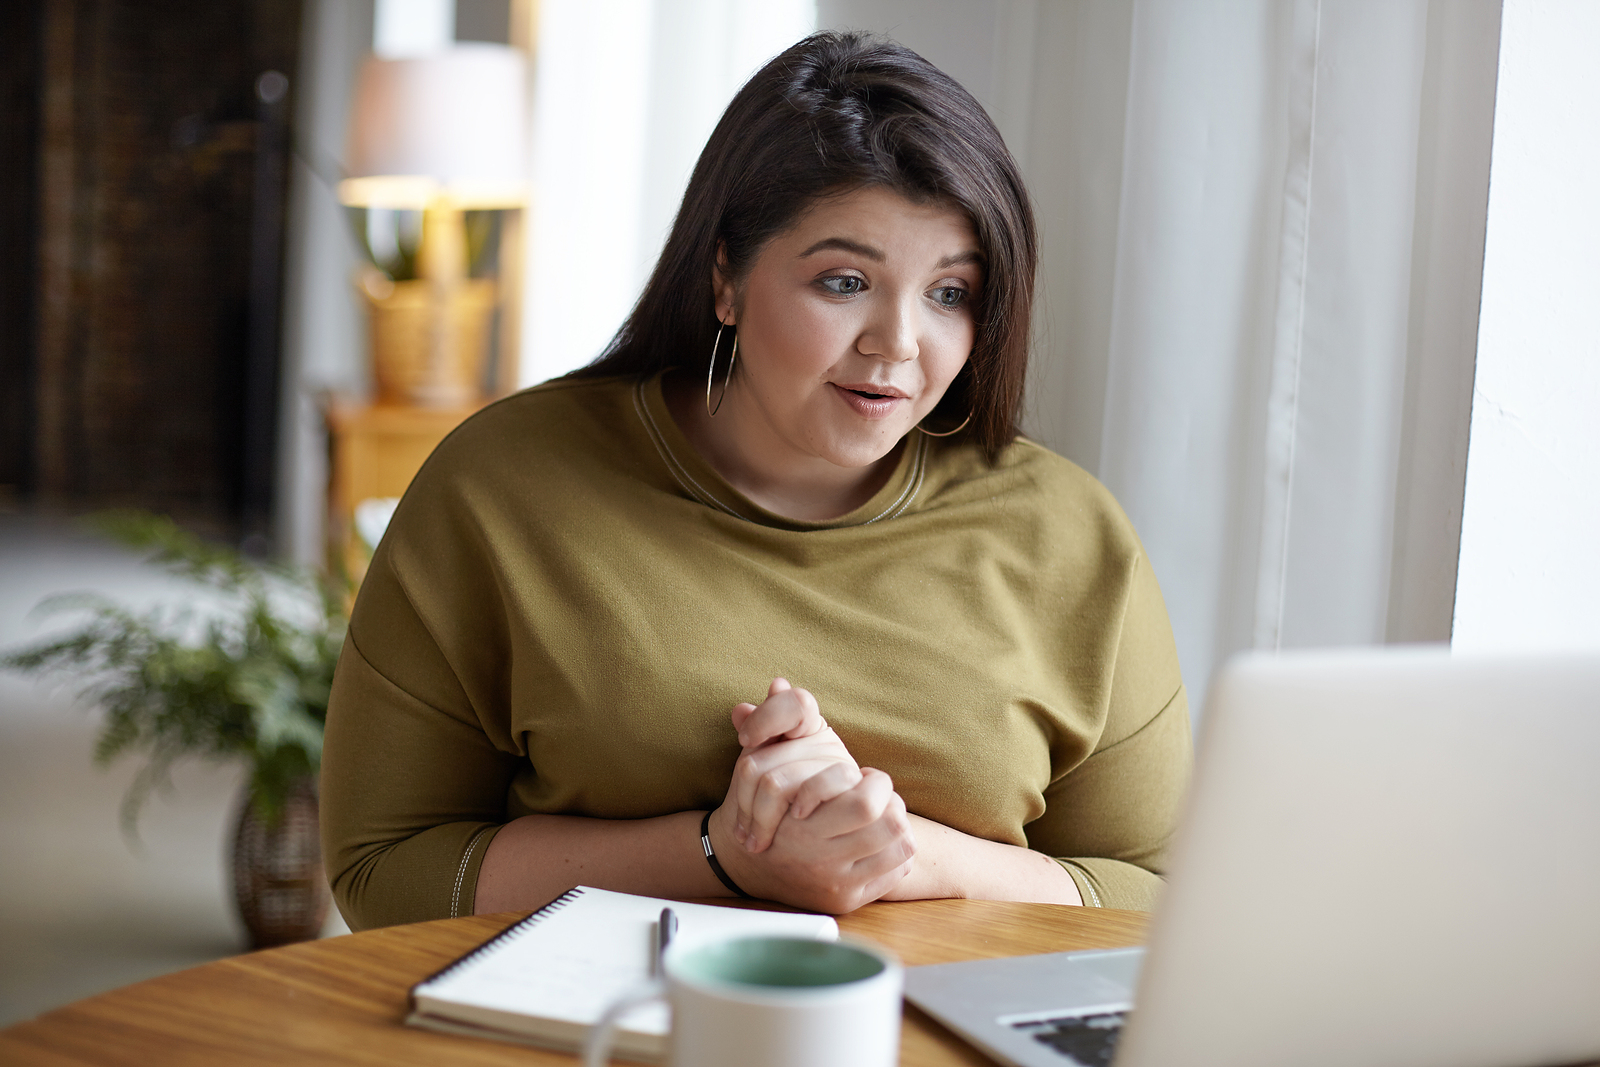 A woman smiles while using a laptop. She is feeling better after starting anxiety therapy in Birmingham, AL with Empower Counseling through online therapy in Auburn, AL.